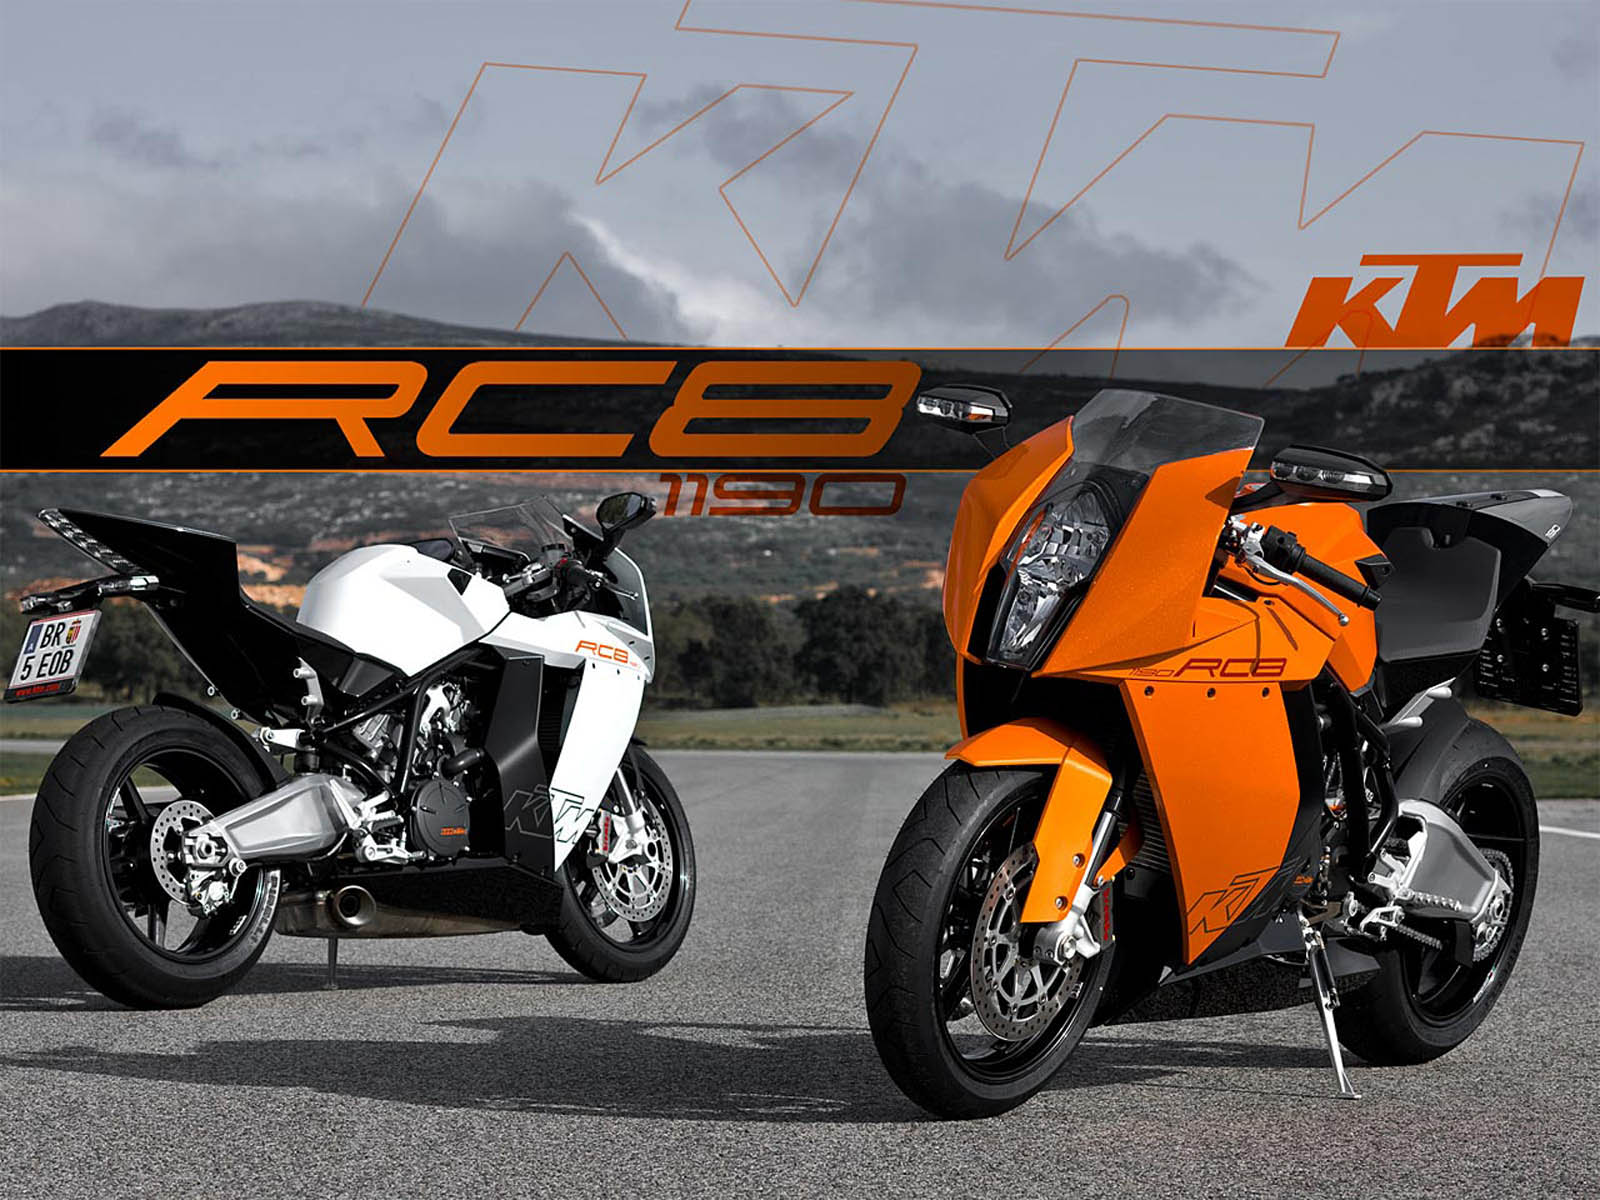 Wallpapers KTM RC8 1190 Bike Desktop Backgrounds KTM RC8 1190 Bike 1600x1200